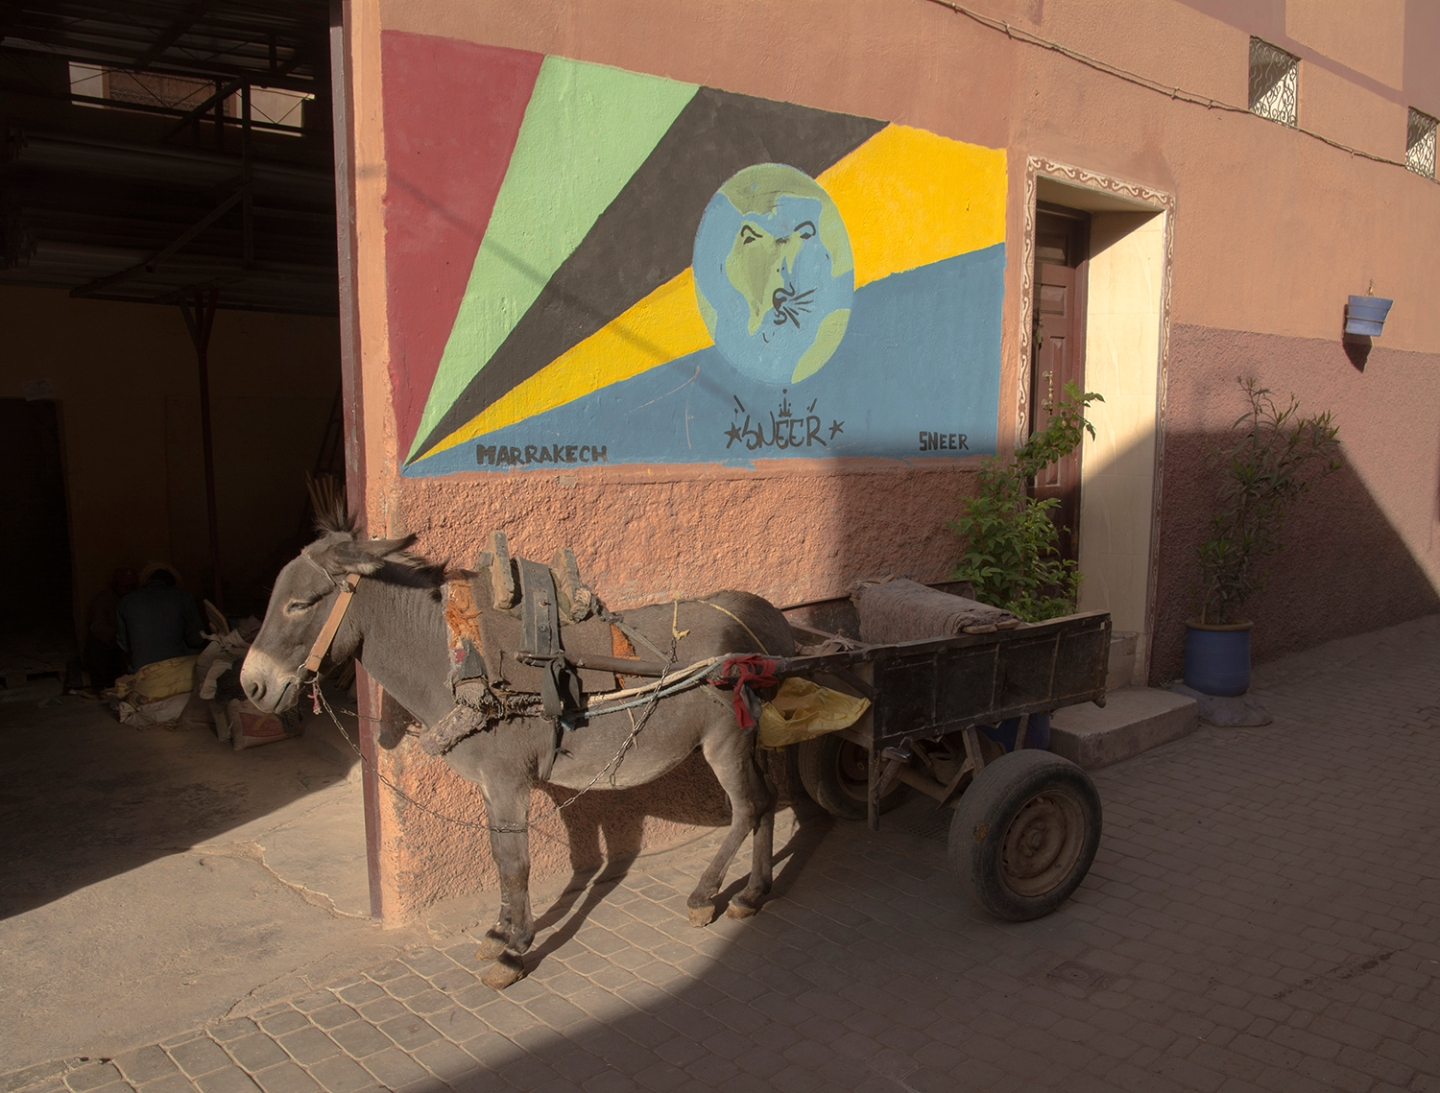 marrakech-donkey-by-peter-ydeen